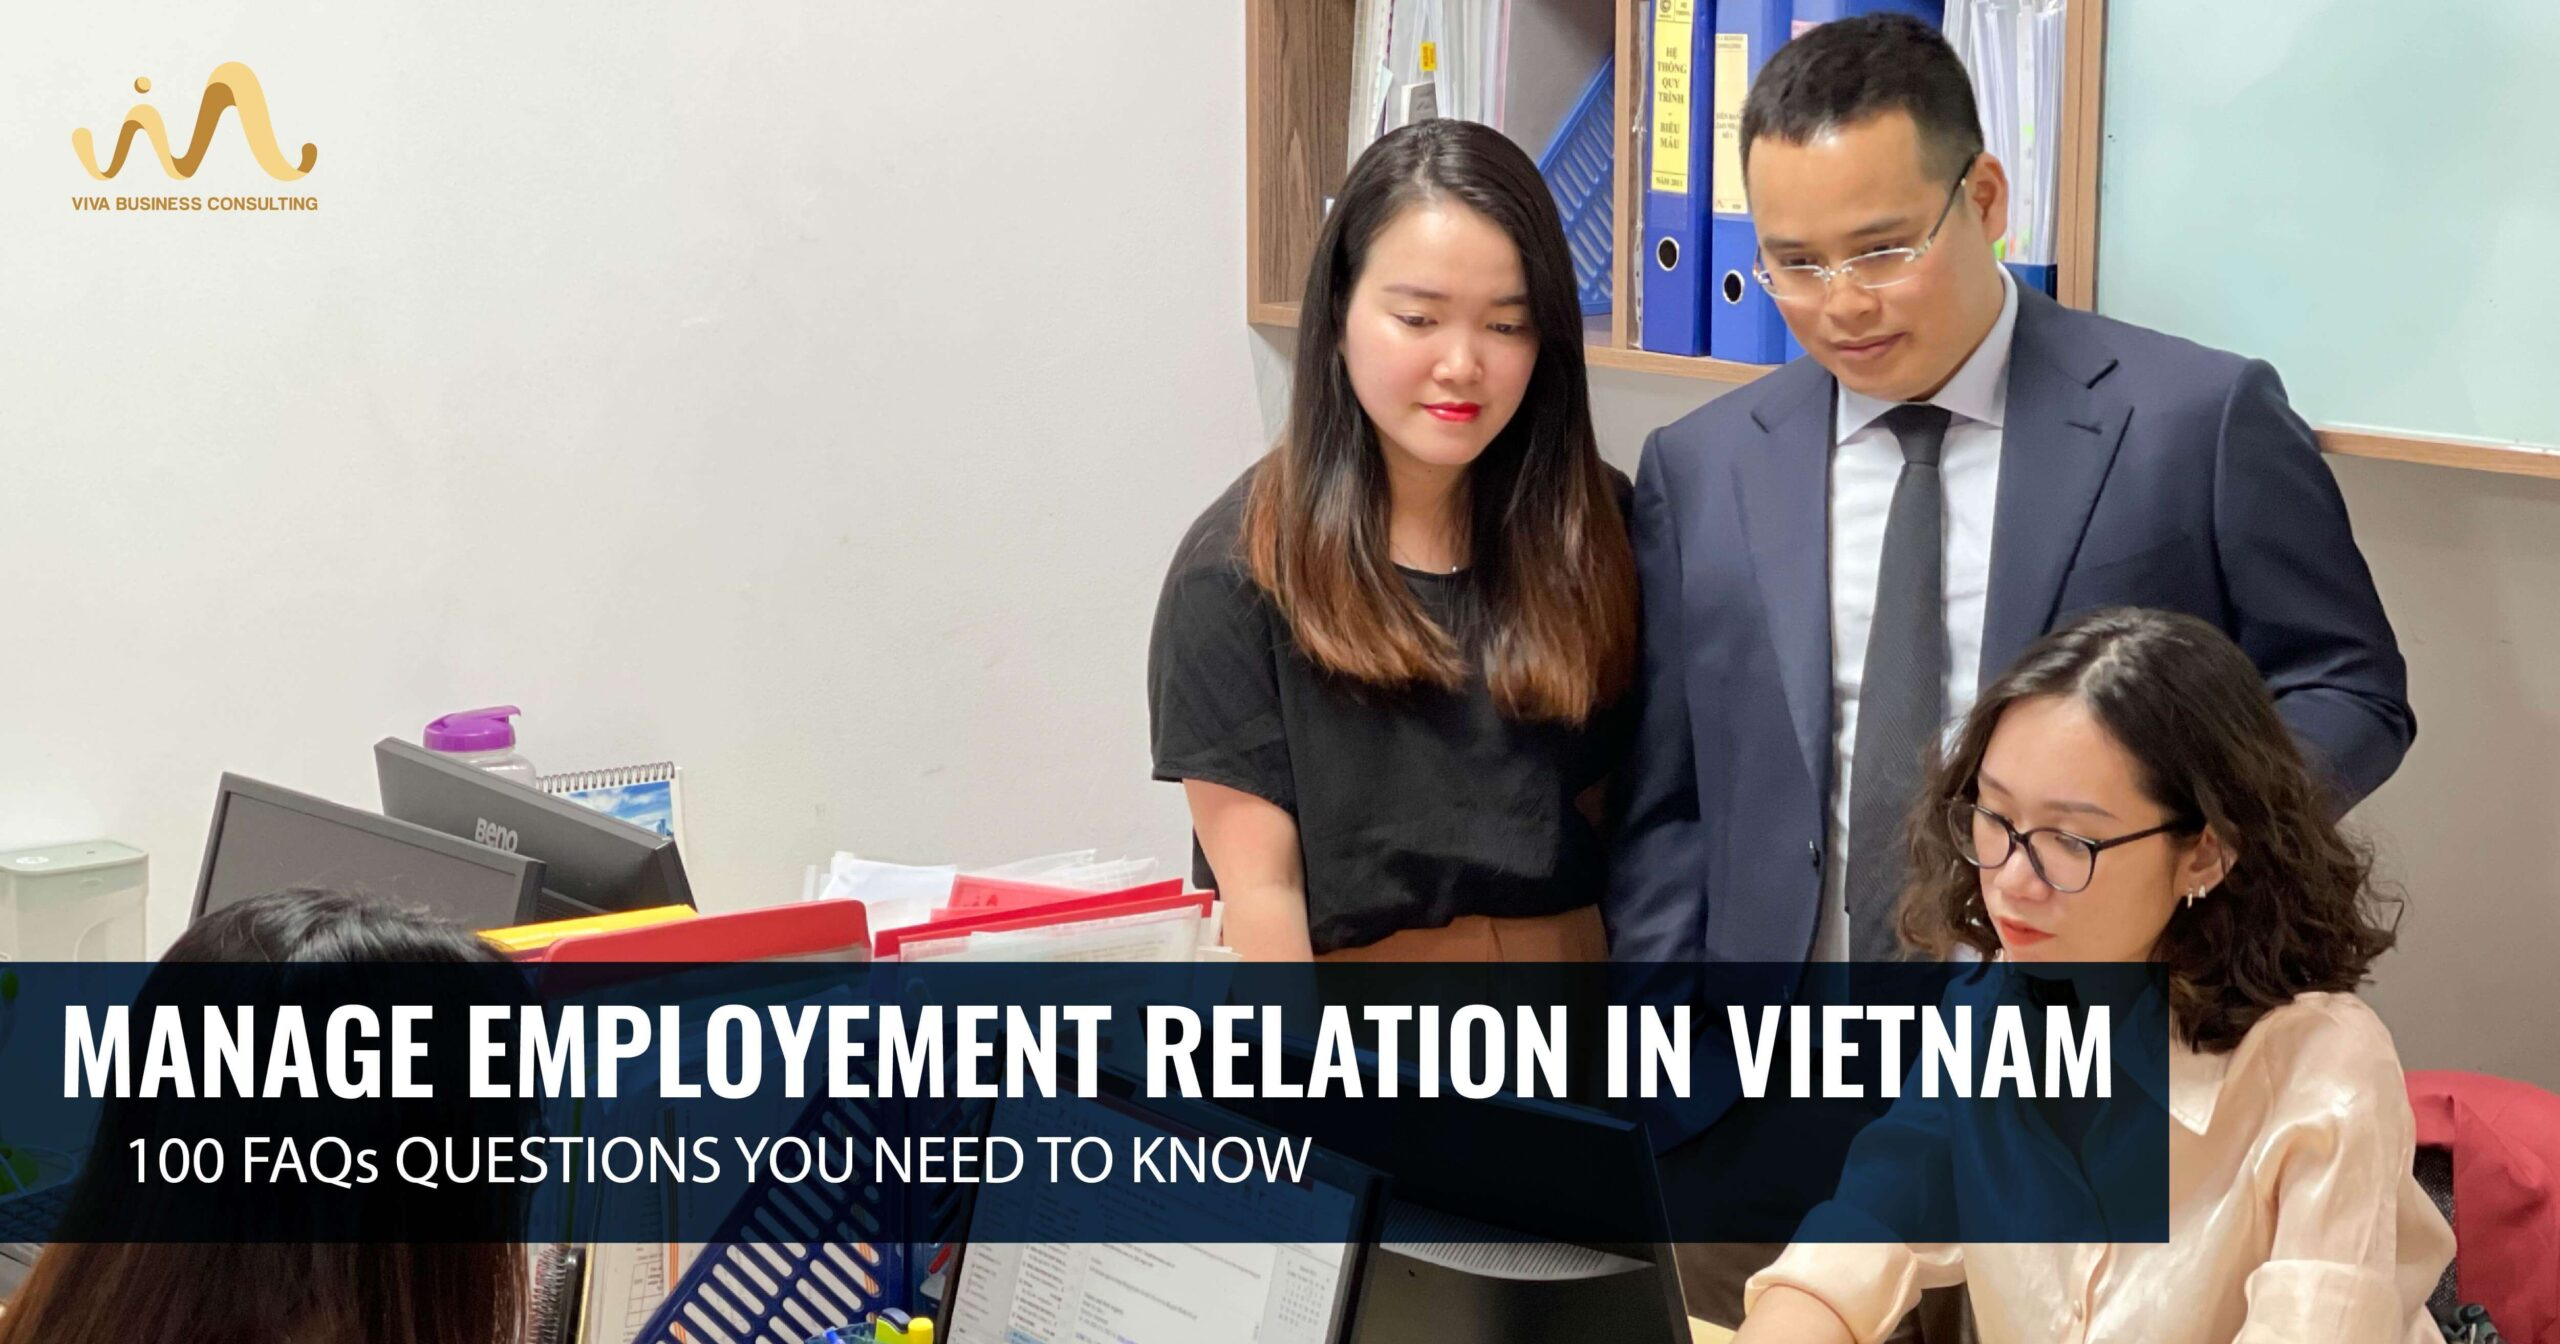 Vietnam Labour Laws - What you need to know | VIVA BCS